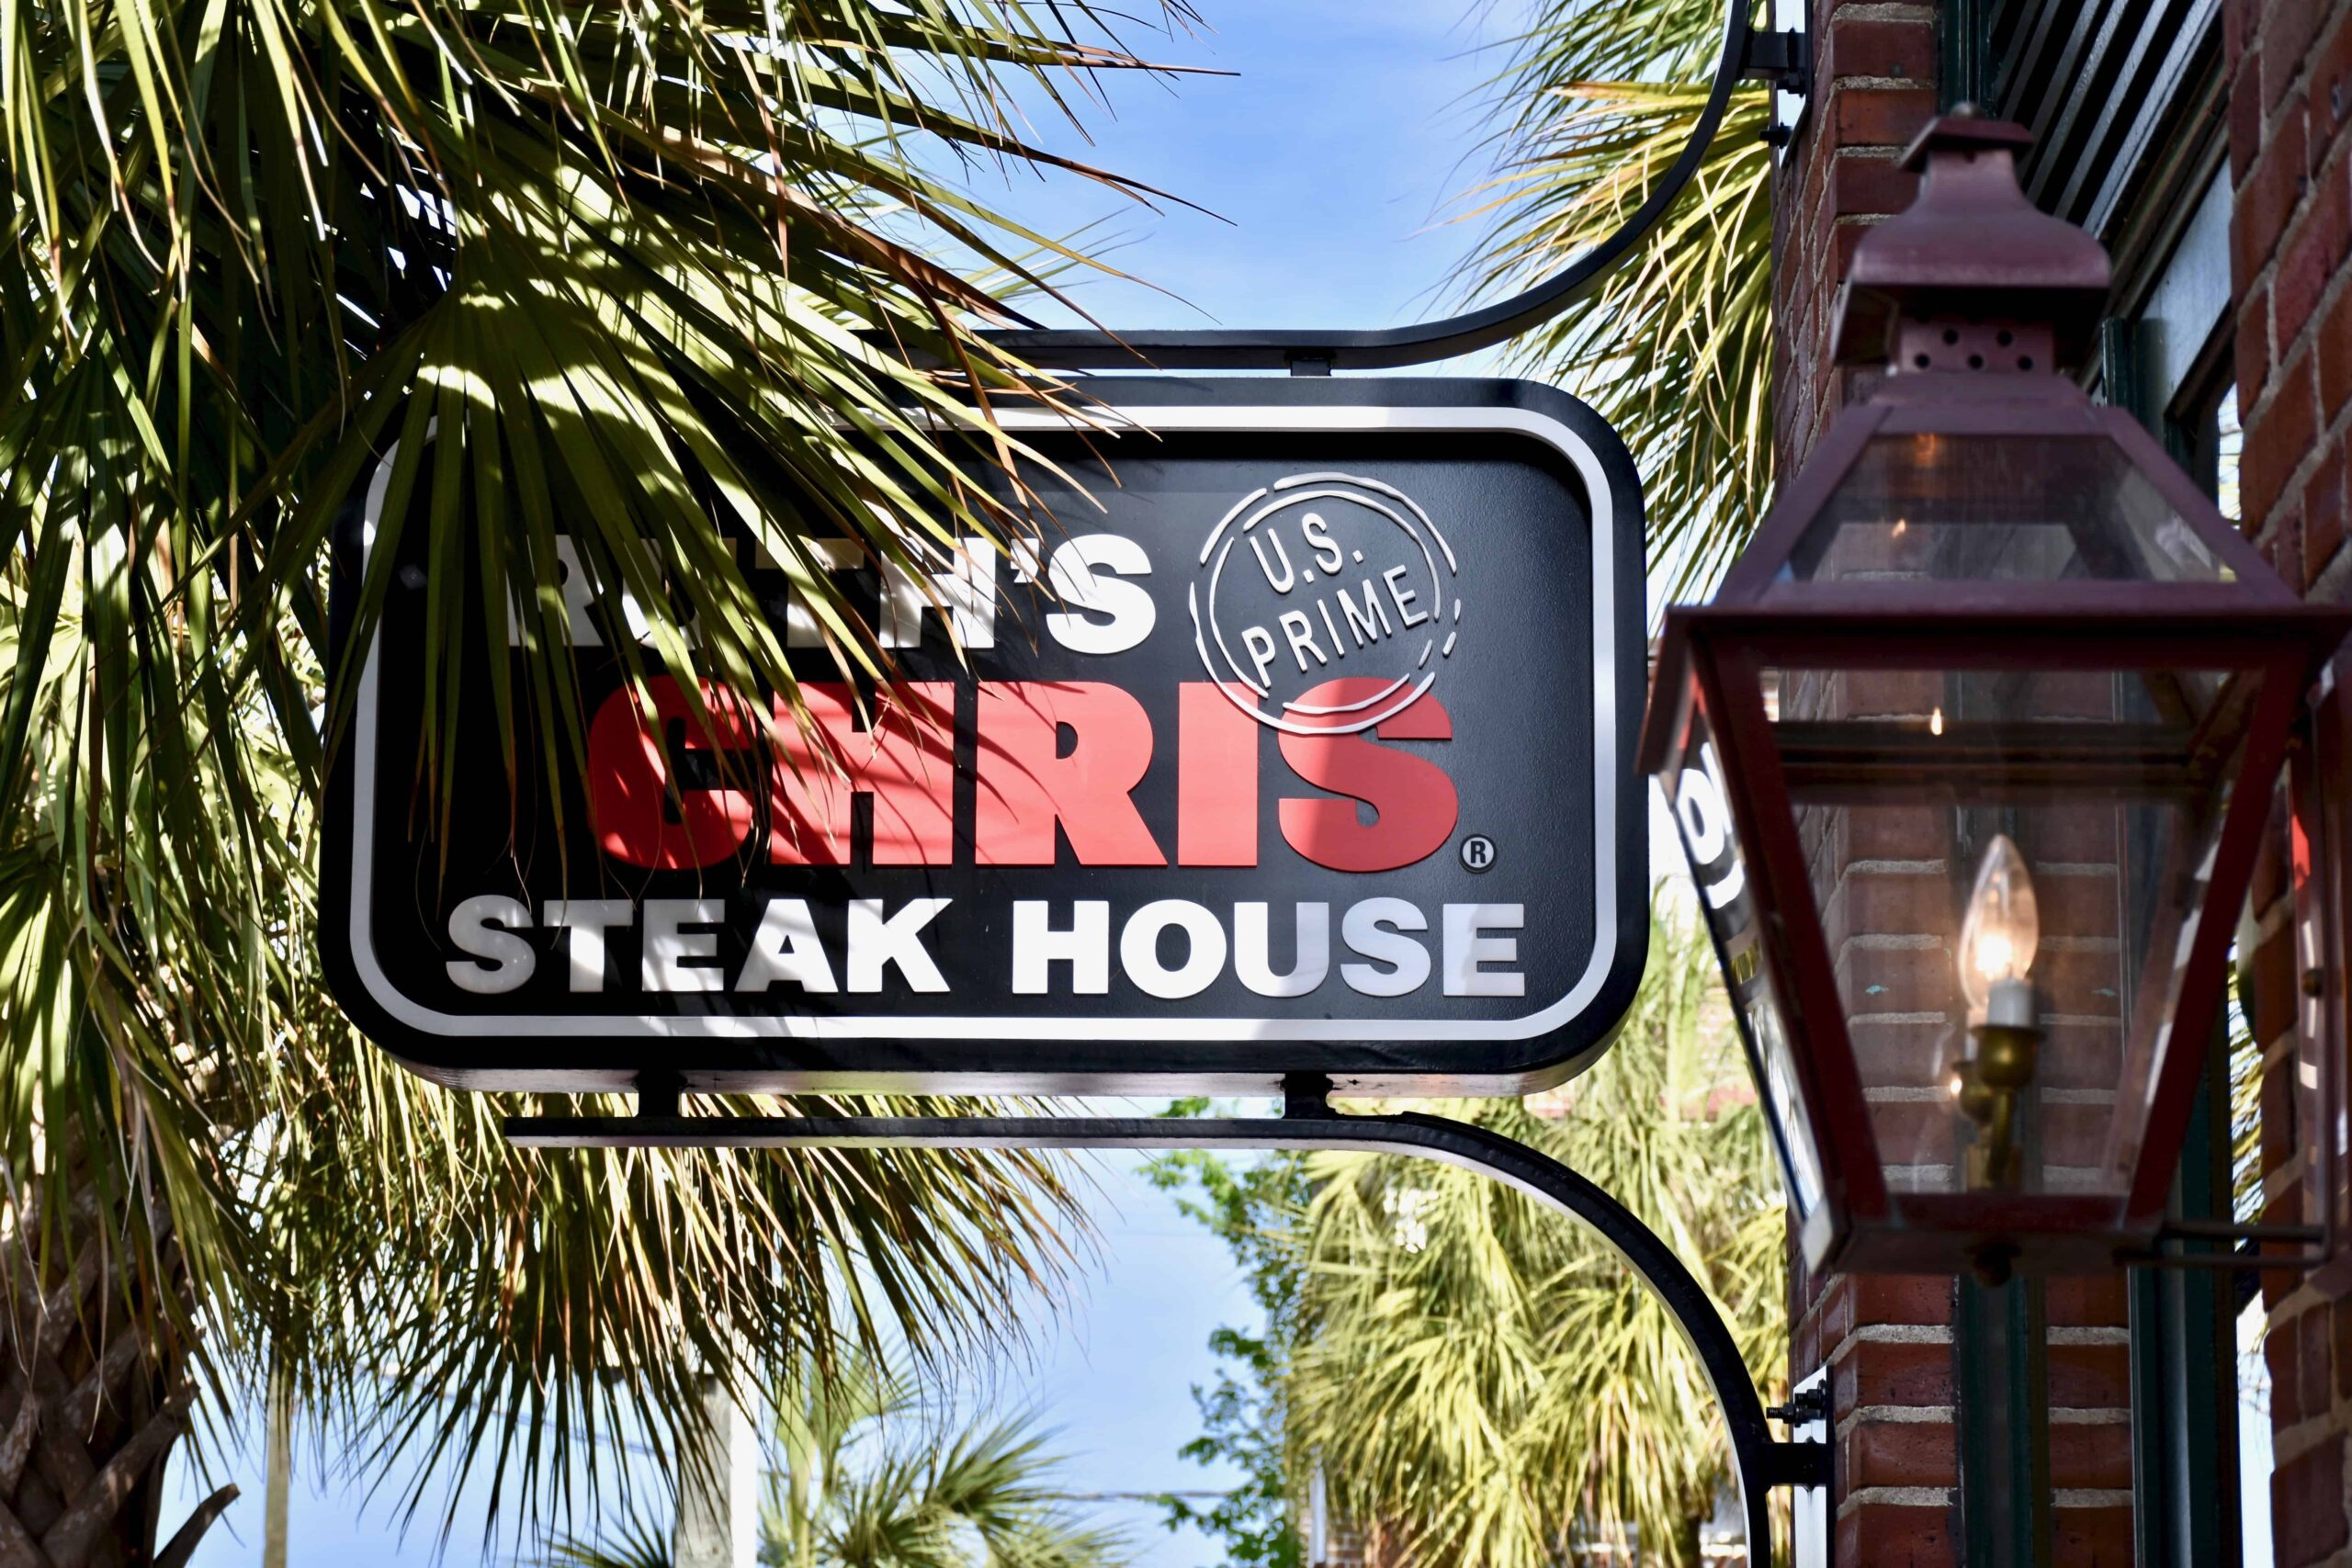 Ruth Chris steak house in Charleston South Carolina